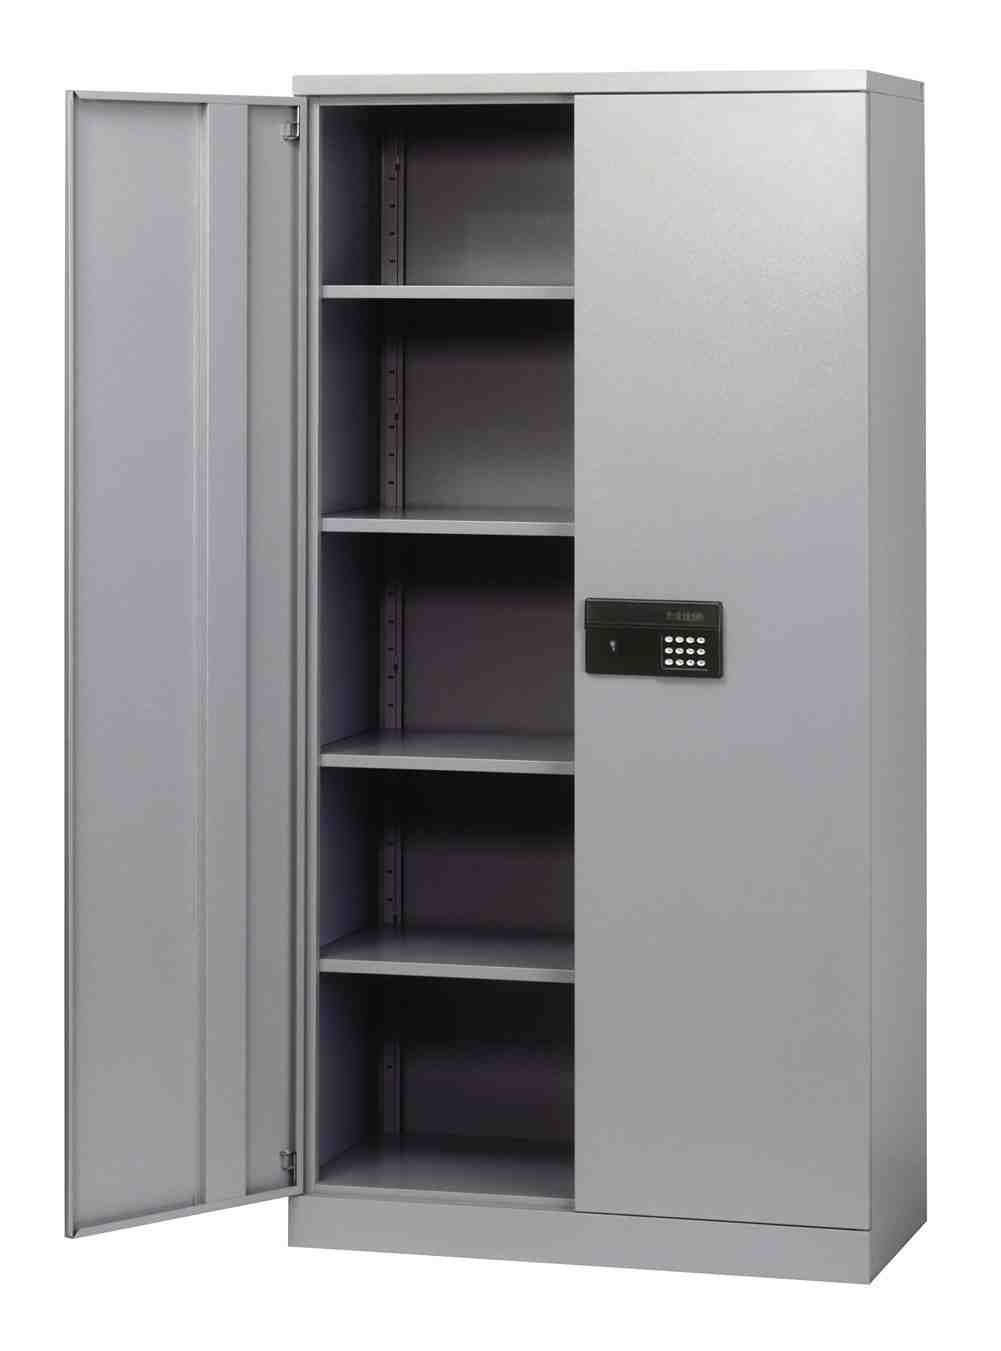 Locked In The Cabinet Steel Storage Cabinets Locking Storage